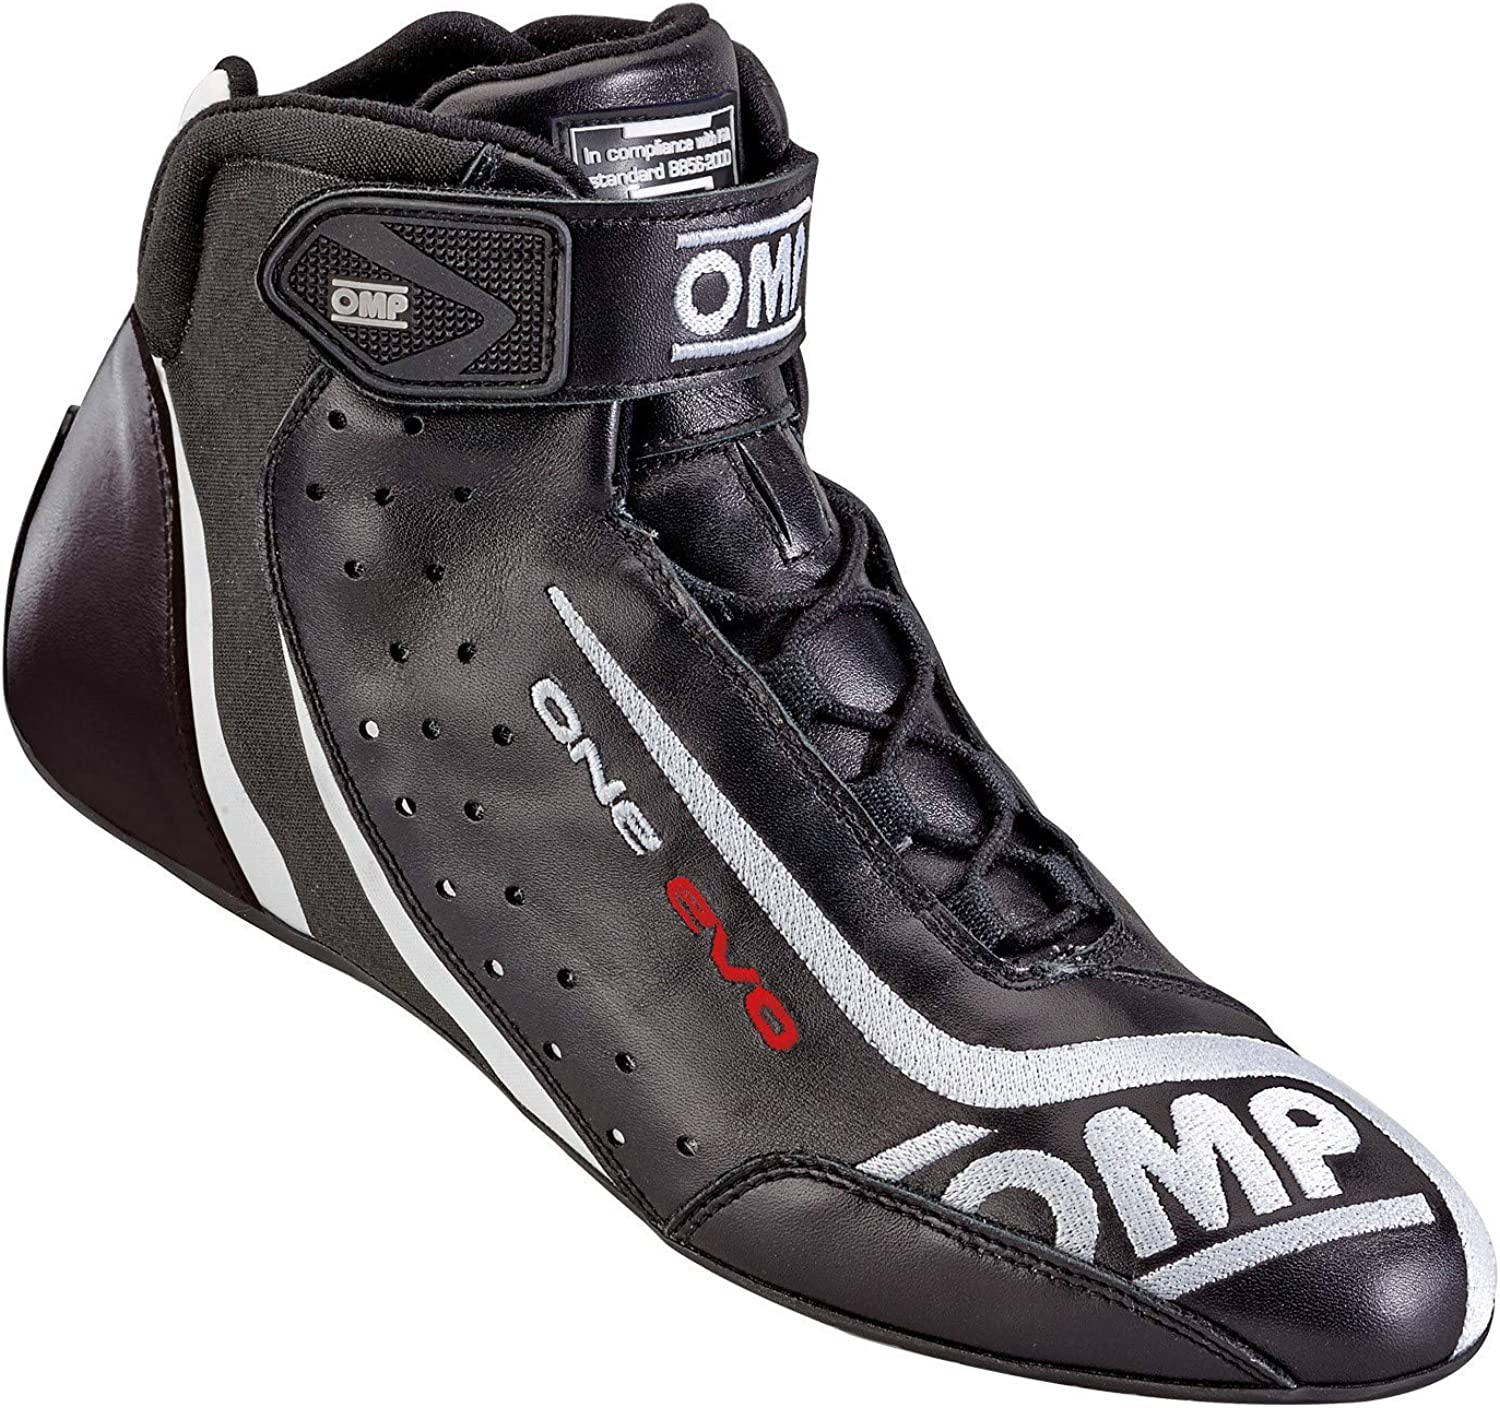 OUTLET SALE OMP Unisex-Adult NEW ARRIVAL ONE EVO Shoes